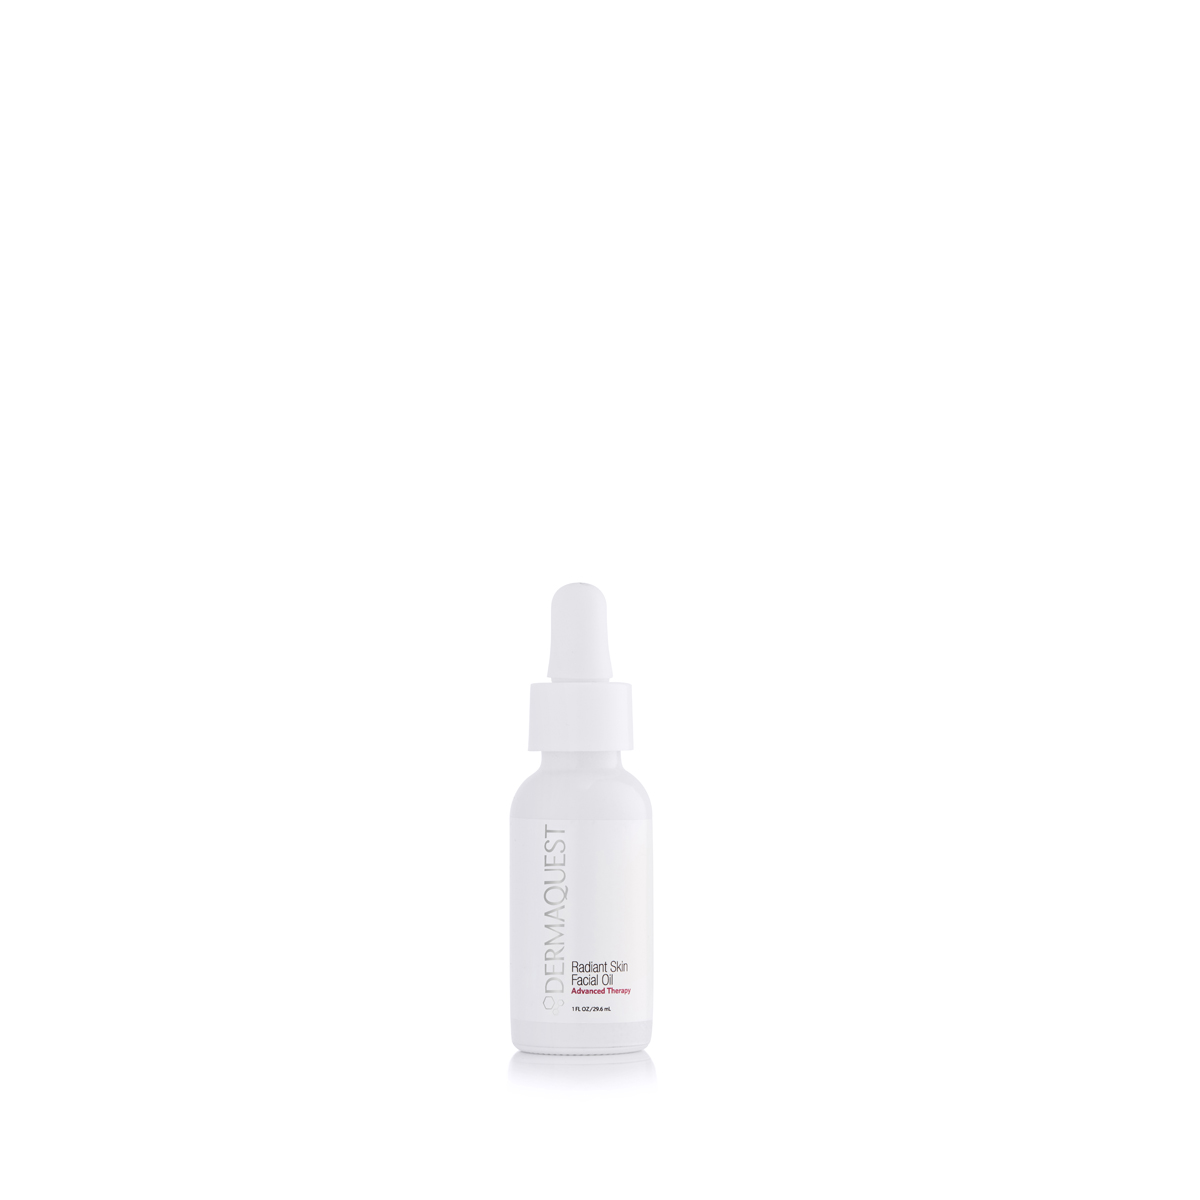 Radiant Skin Facial Oil – Advanced Therapy